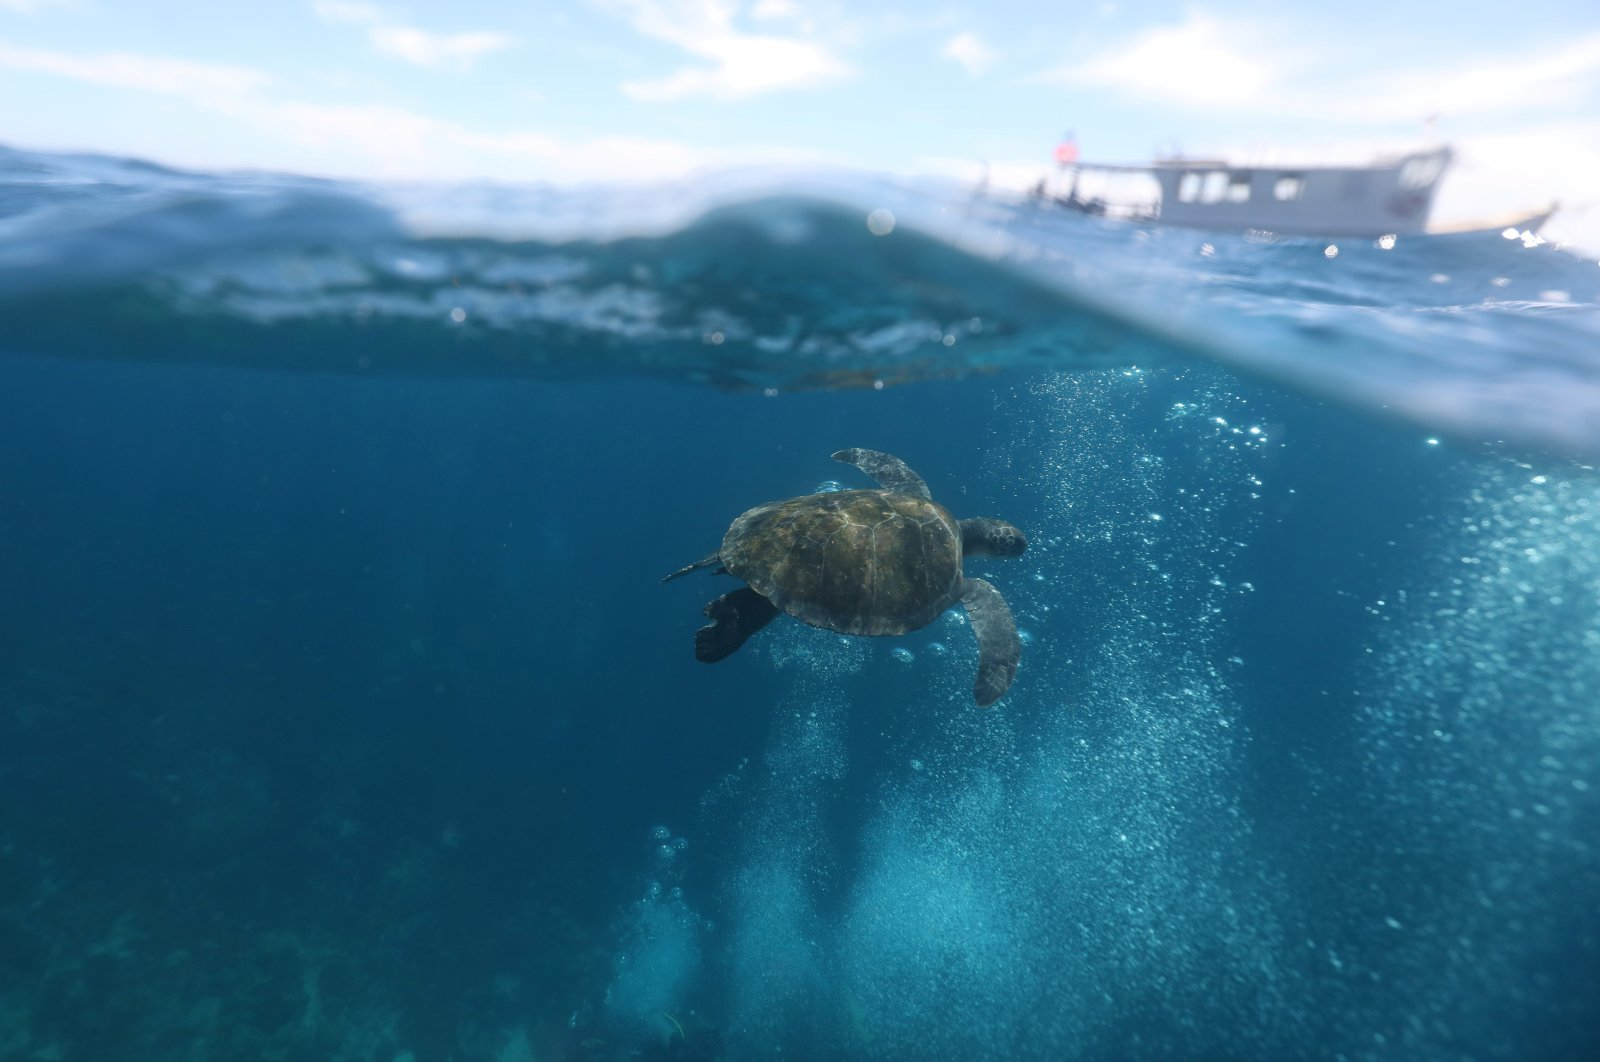 A turtle swims after an ocean cleaning by Sea Shepherd NGO volunteers to remove garbage at Ancora island in Buzios, Rio de Janeiro state, Brazil, March 14, 2021. (Reuters Photo)